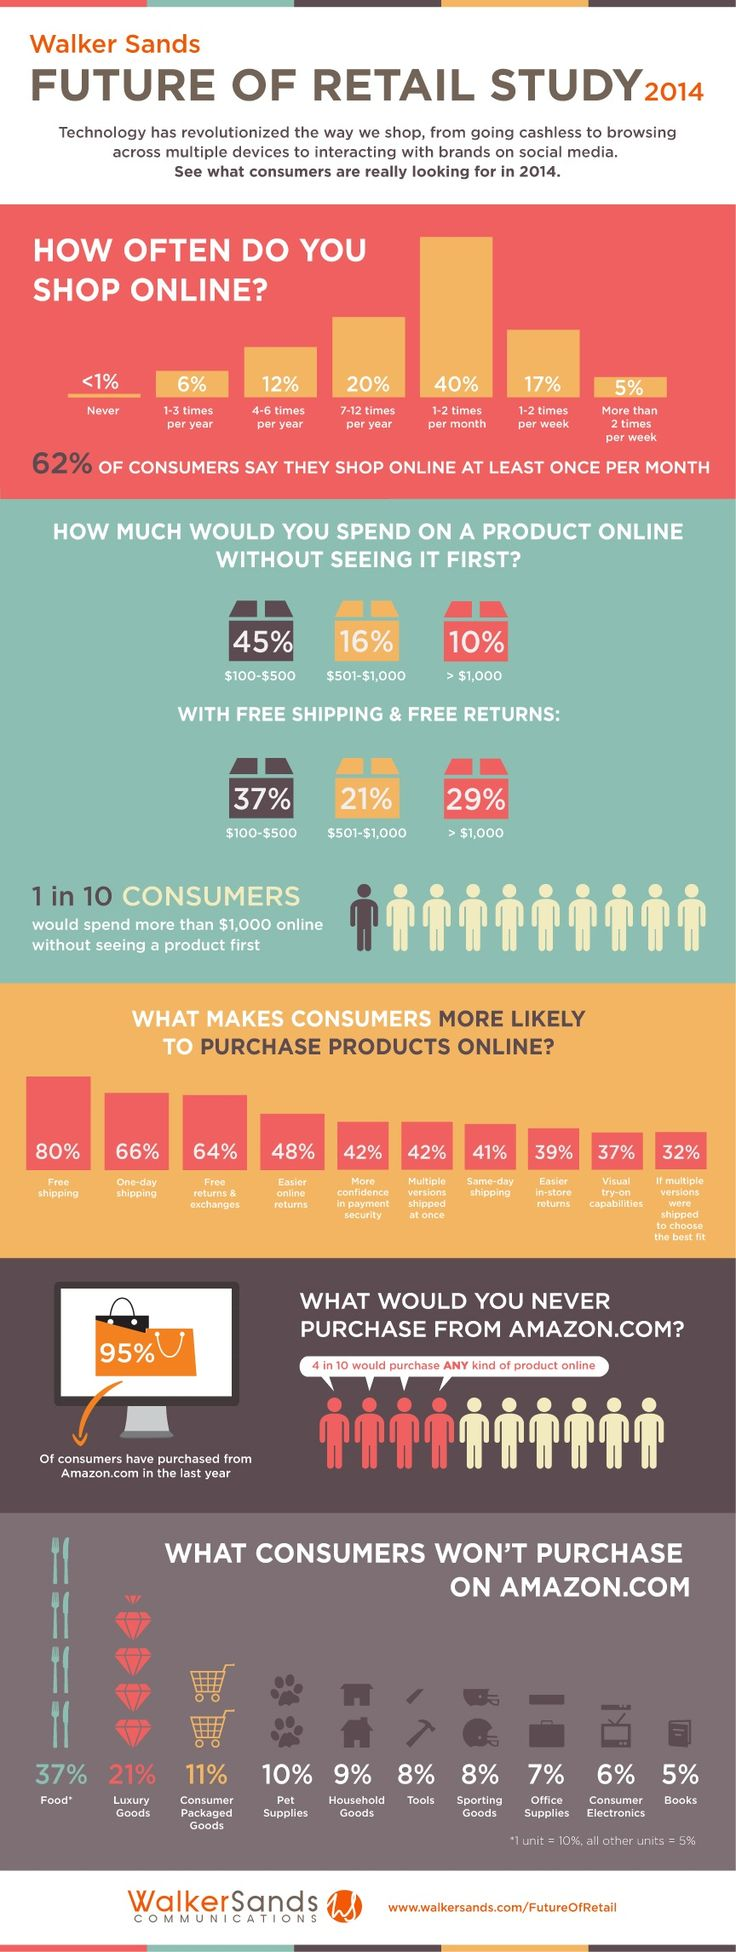 Customer Behavior - What Will Drive Consumers to Shop Online in 2014 [Infographic] : MarketingProfs Article